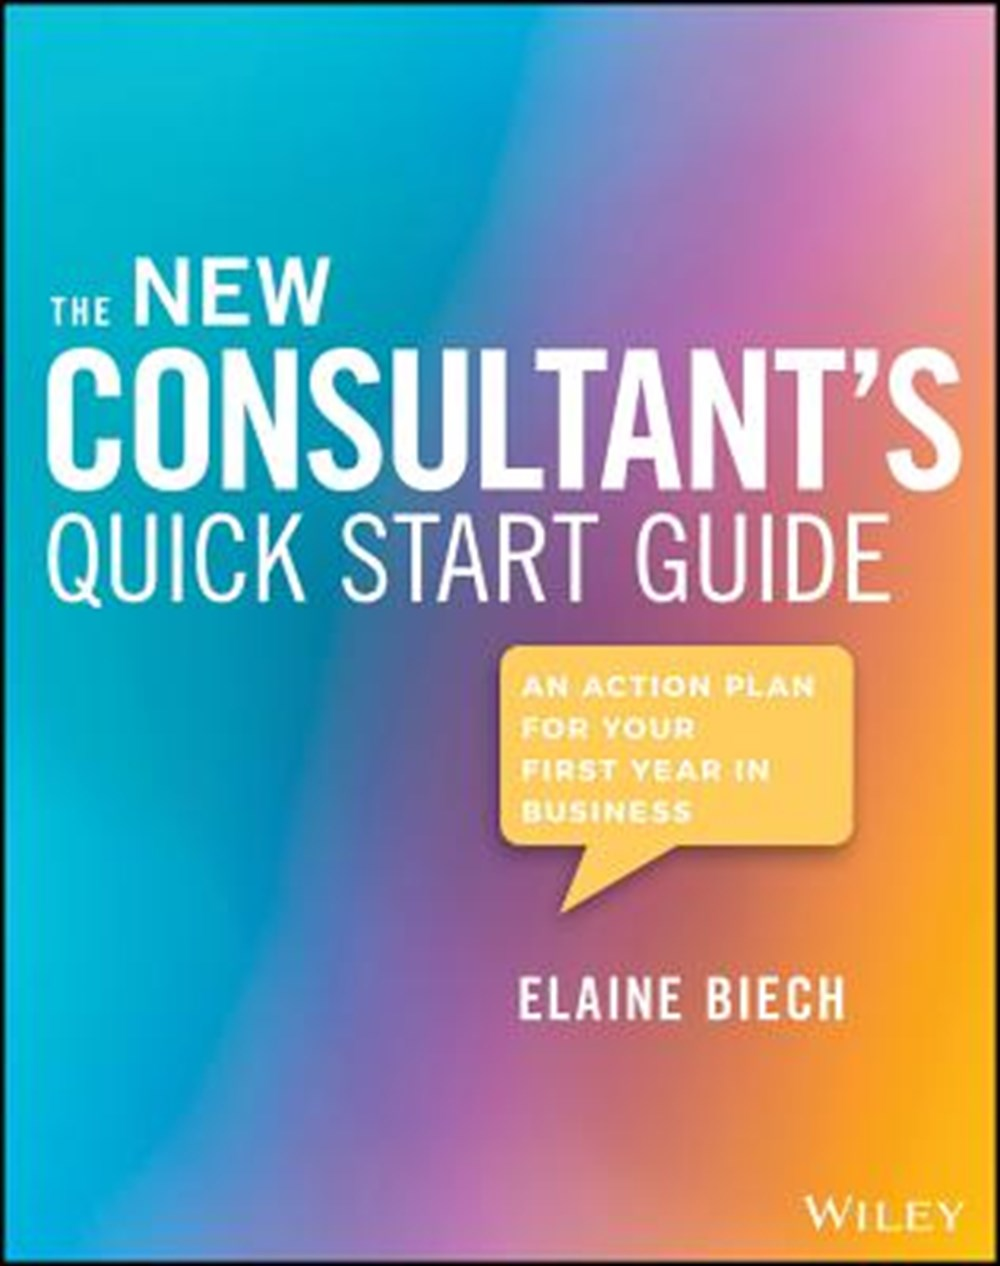 New Consultant's Quick Start Guide An Action Plan for Your First Year in Business